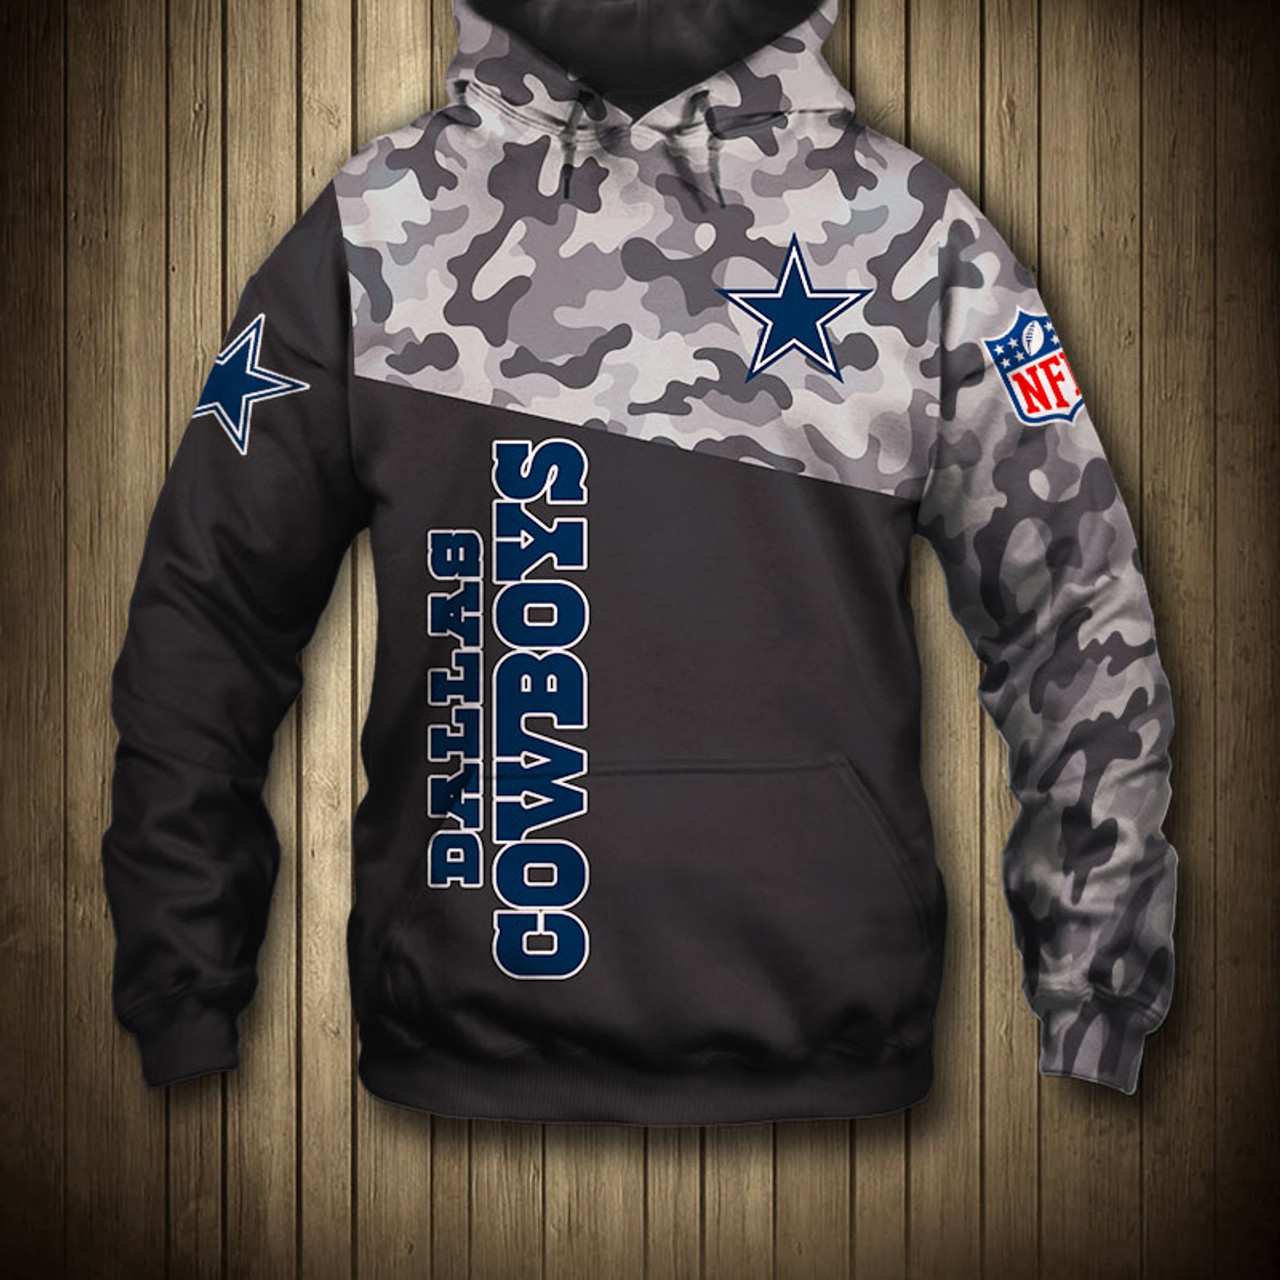 another chance 737db cfd87 **(OFFICIAL-N.F.L.NEW-DALLAS-COWBOYS-CAMO.DESIGN-PULLOVER-HOODIES/3D-CUSTOM-COWBOYS-LOGOS  & OFFICIAL-COWBOYS-TEAM-COLORS/NICE-3D-DETAILED-GRAPHIC-PRIN...